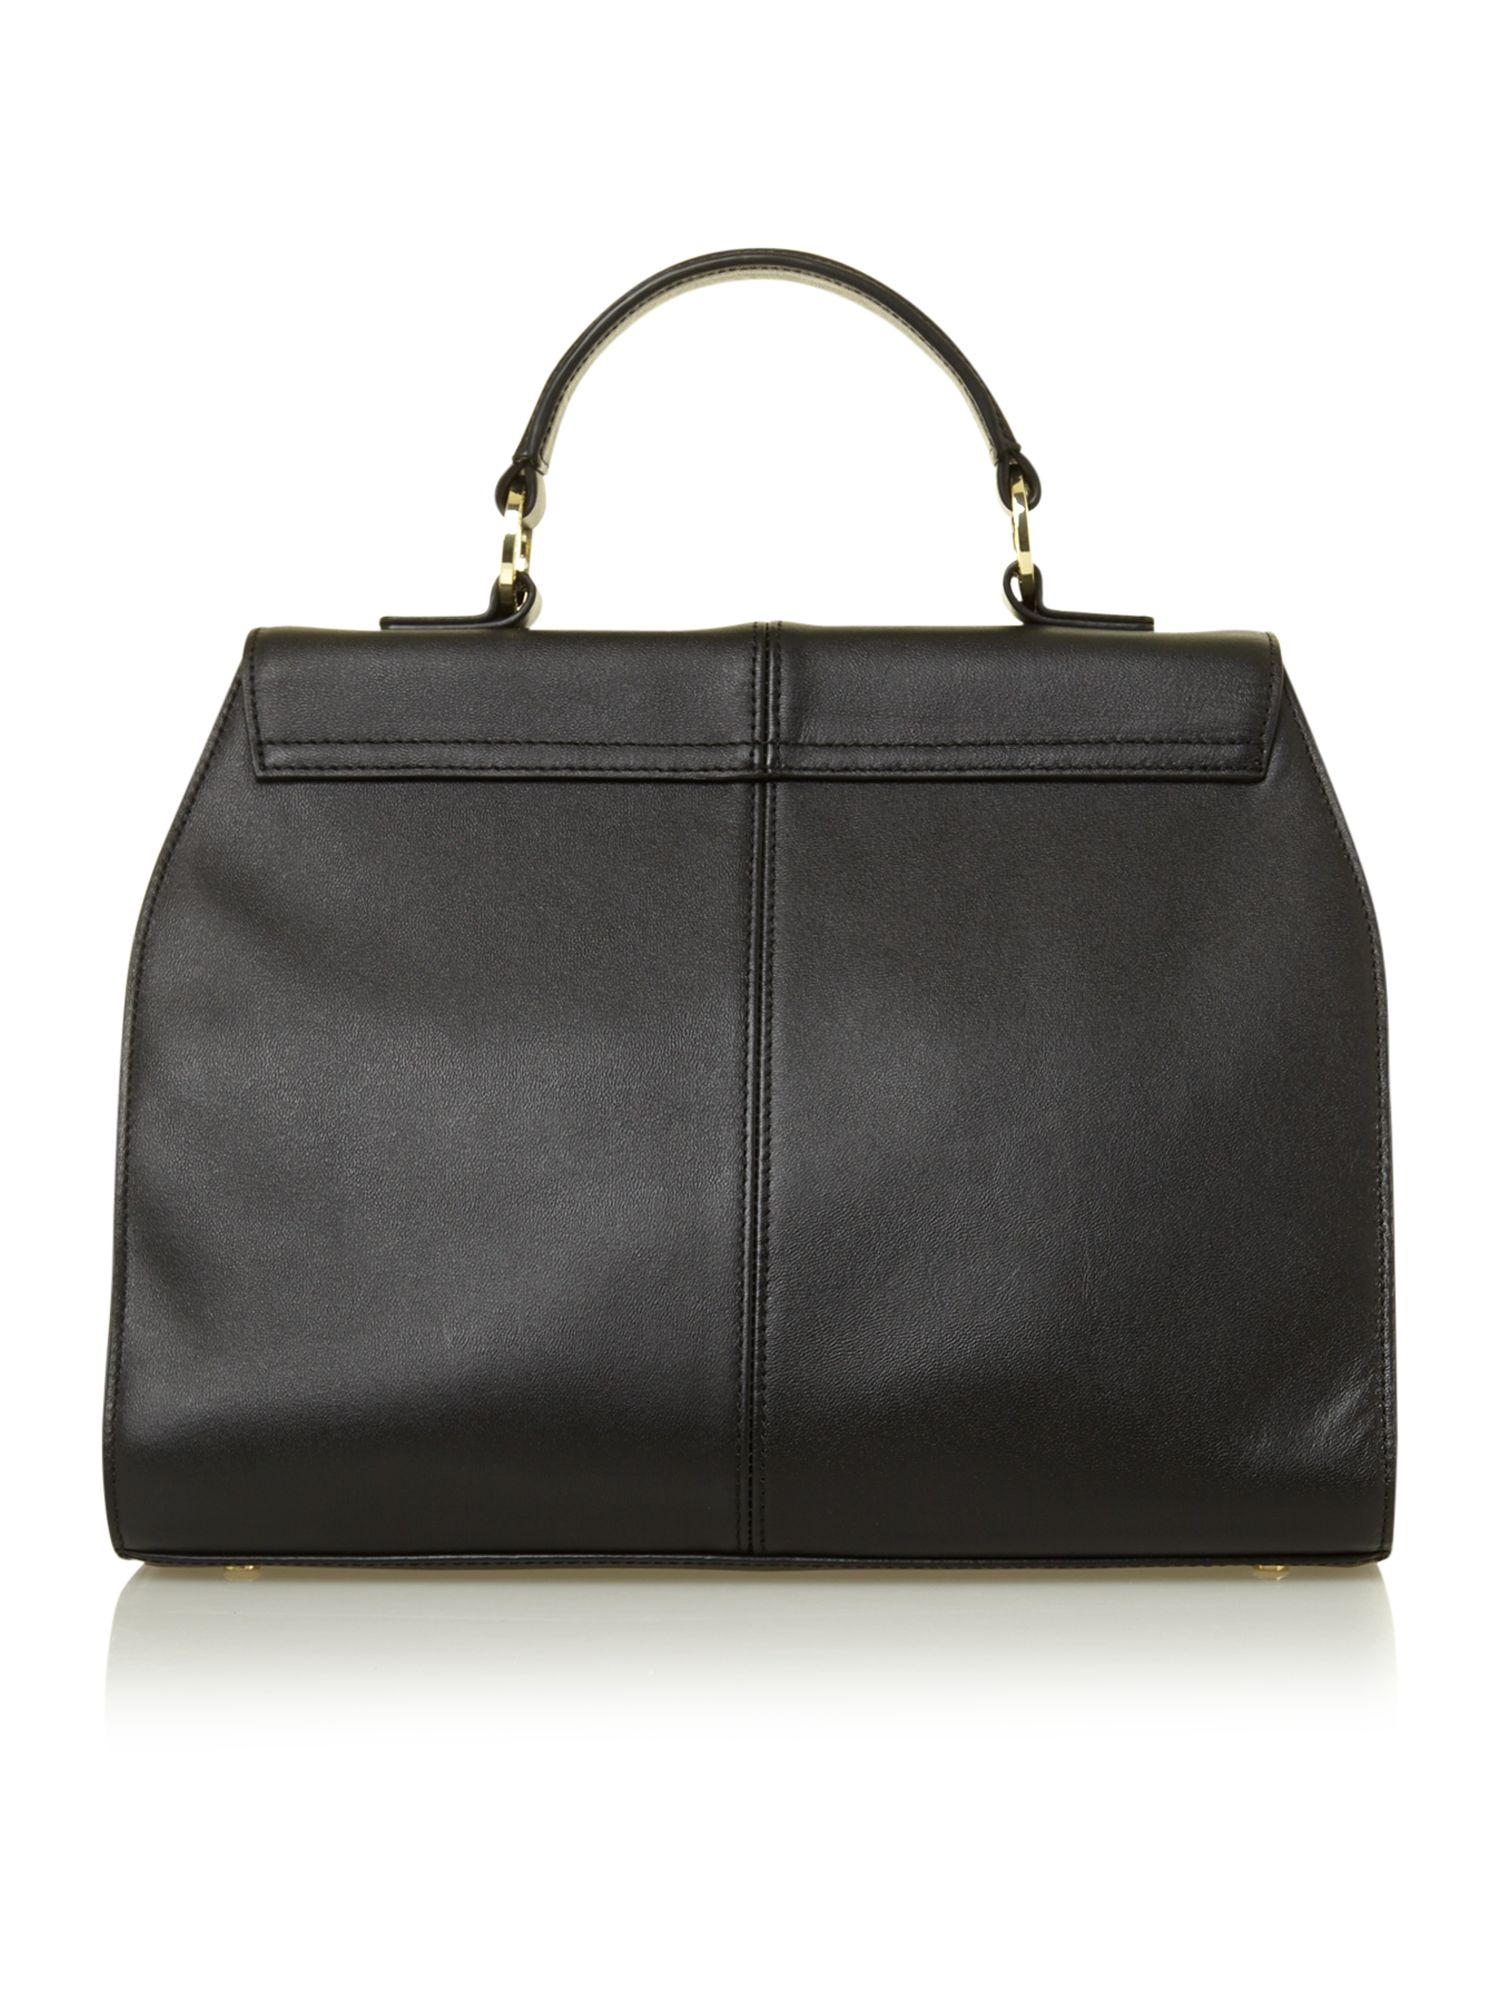 Tara top handle satchel bag